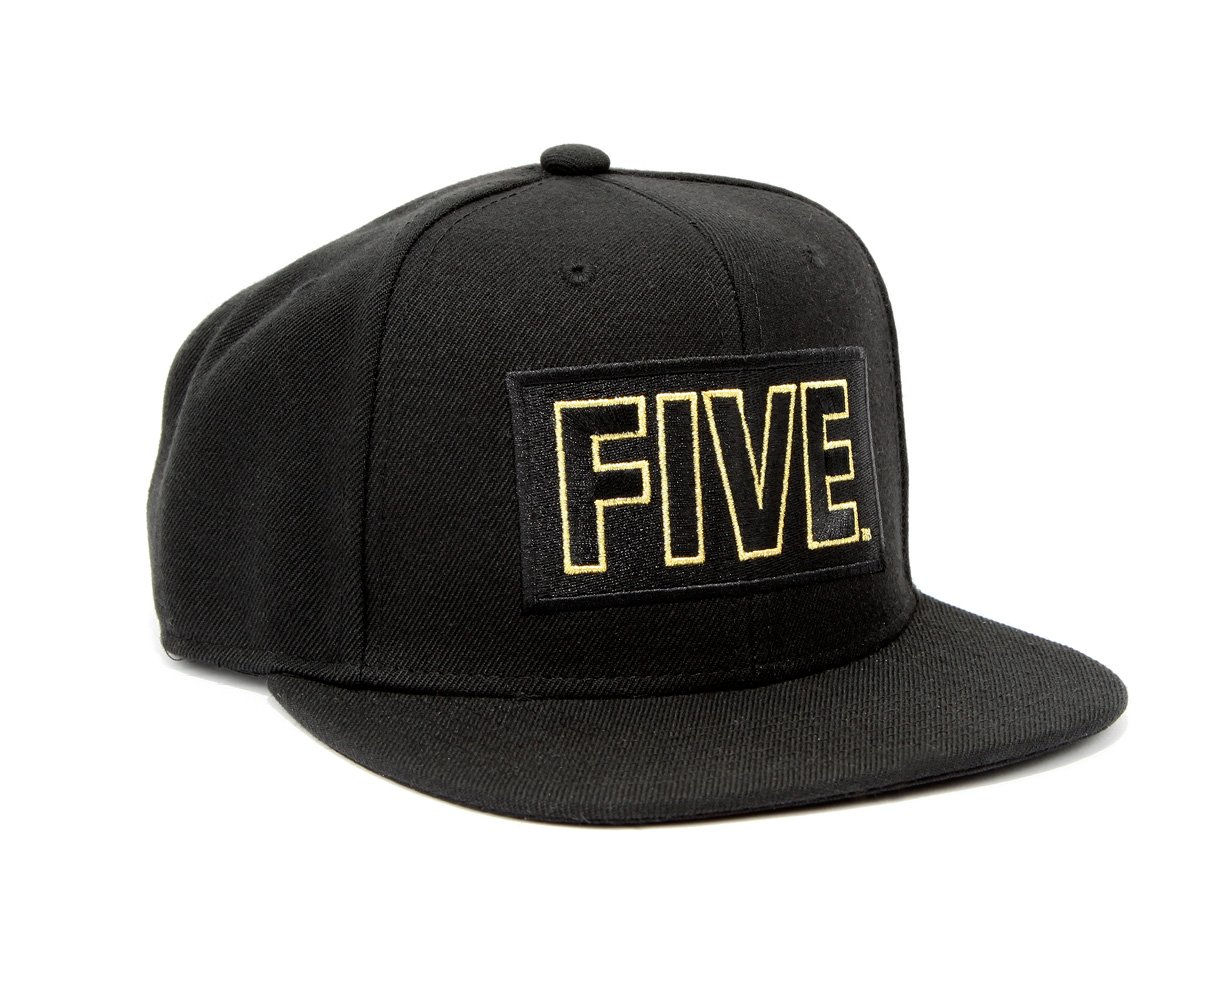 RT @5mag: The all new #FIVE Black/Gold Snapback has just landed in store https://t.co/5ZEUjJD3ZA https://t.co/PnDvgD5CES